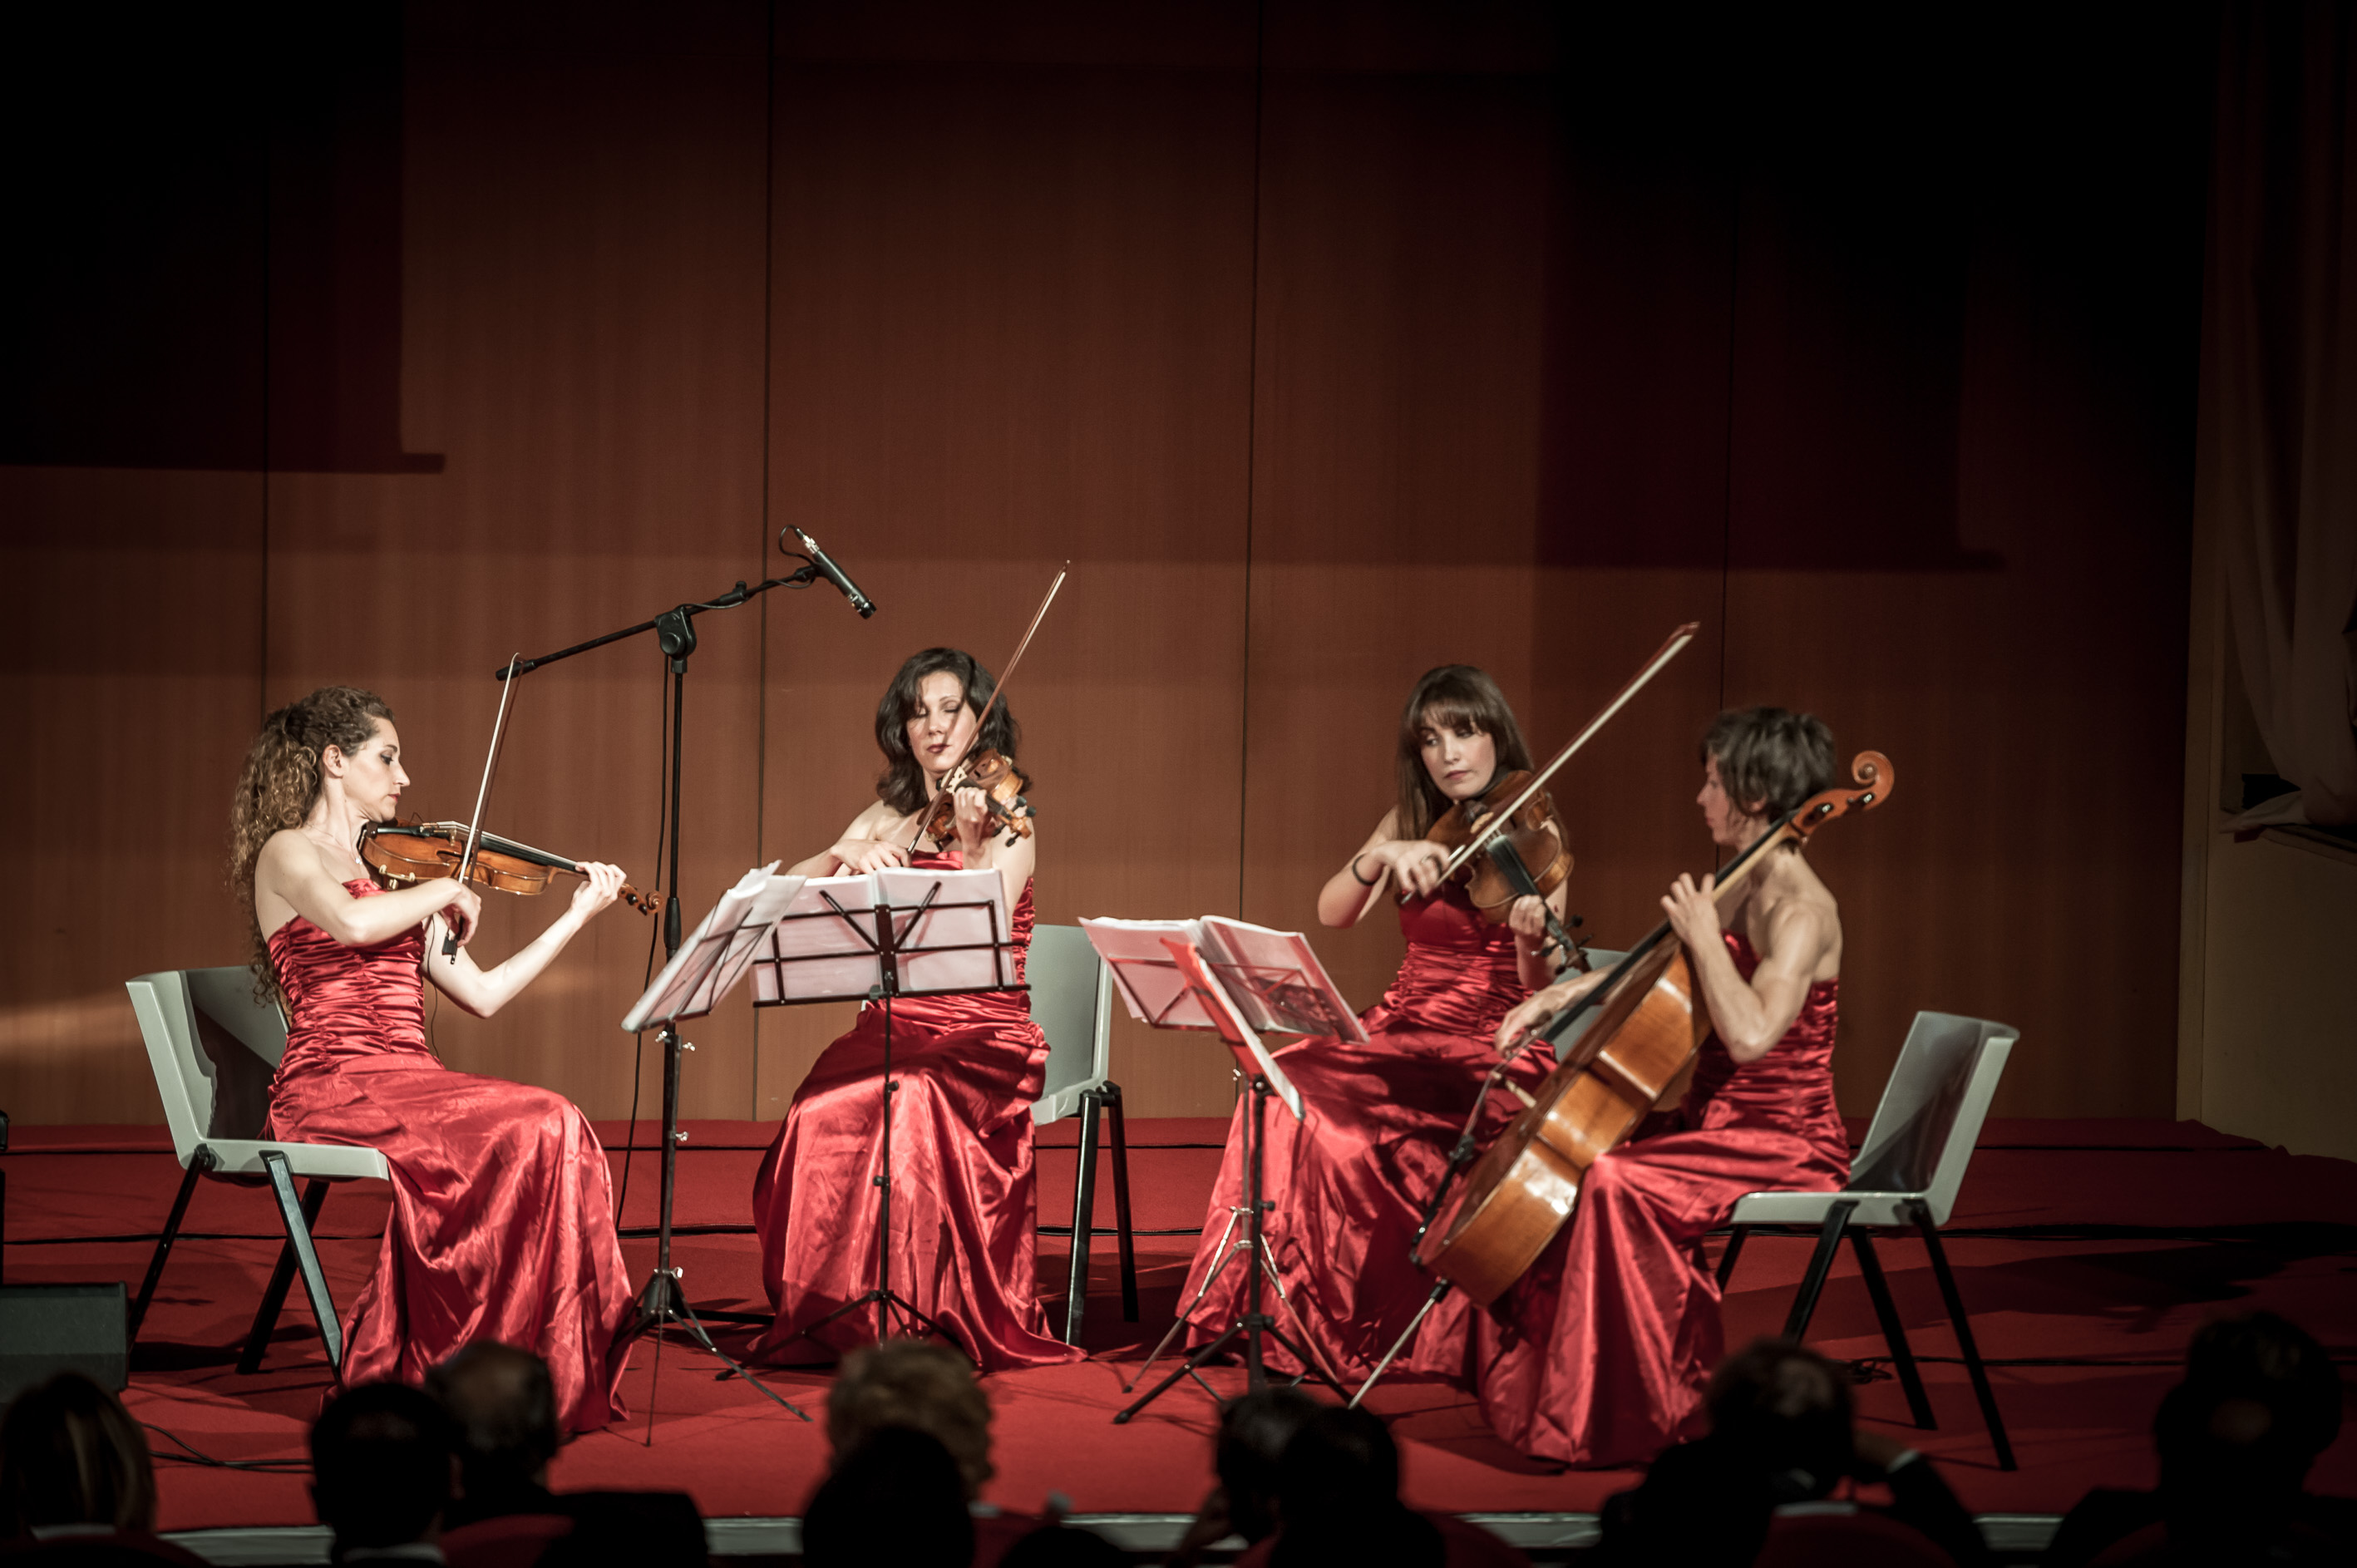 Alter_Echo_String_Quartet__170513_9748_(©_Roberto_Cifarelli)